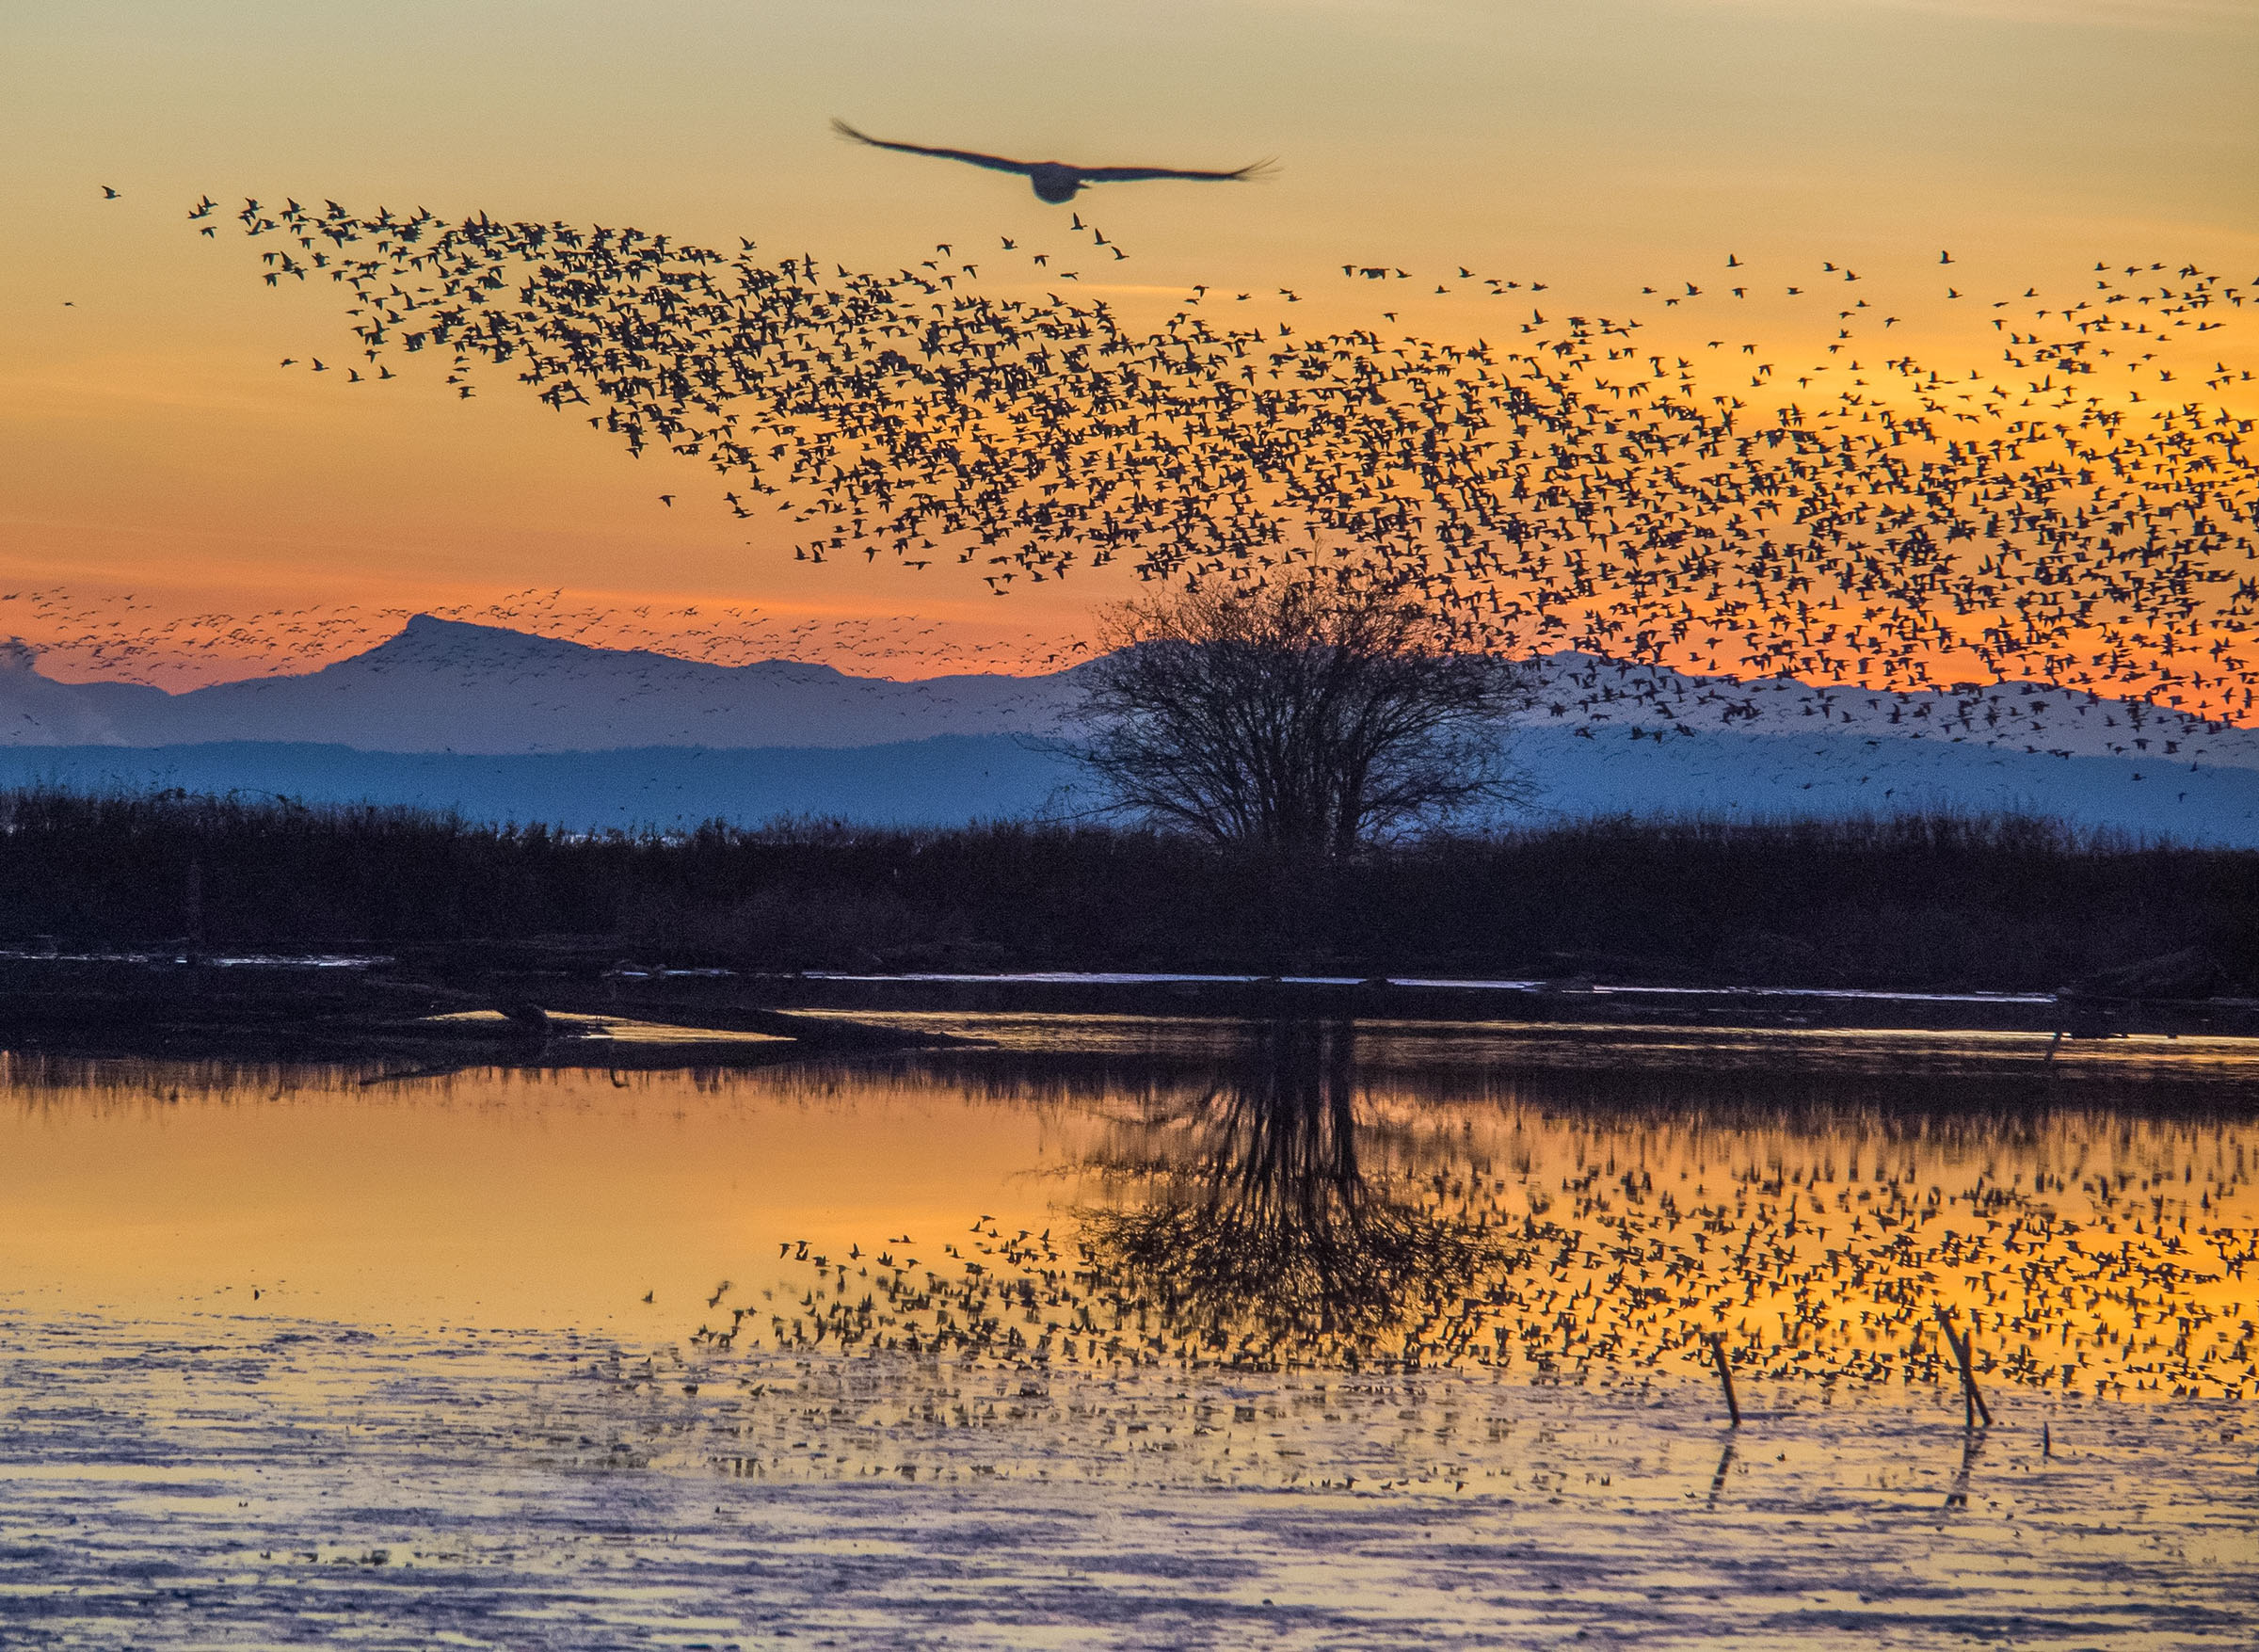 Swarming Flock of Birds at Sunset